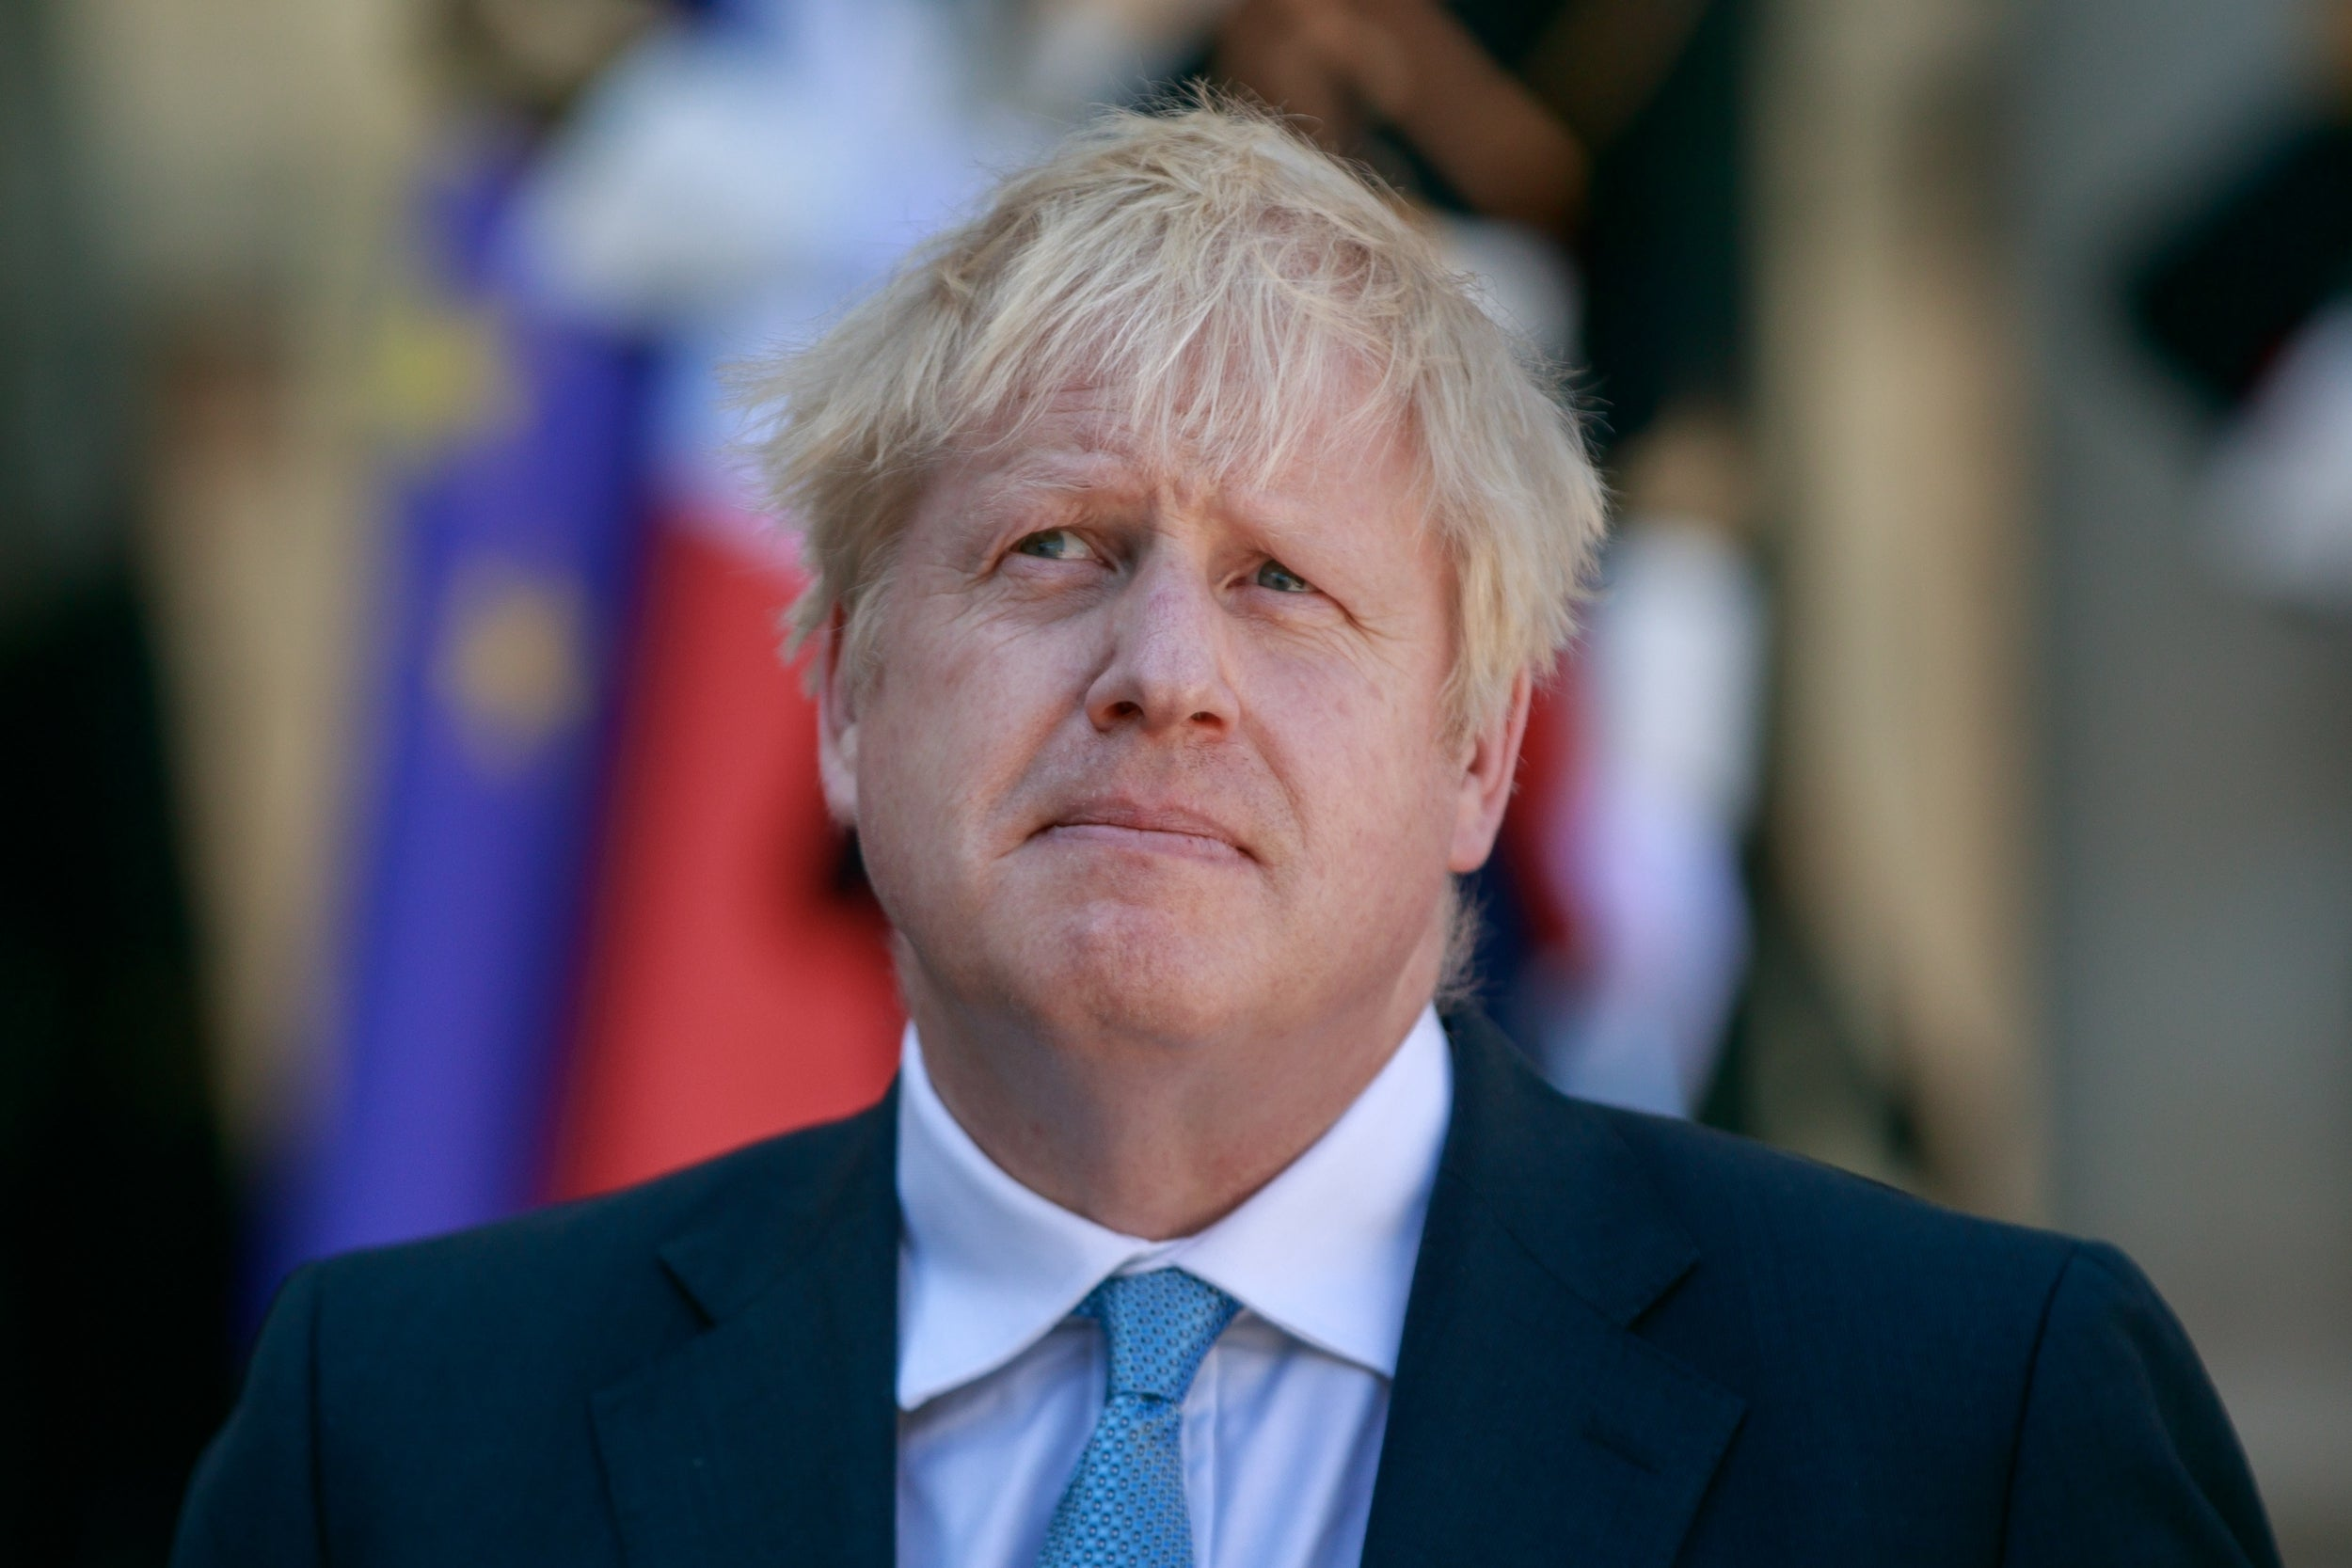 Brexit news - LIVE: Macron tells Boris Johnson backstop is 'indispensable' and says new Withdrawal Agreement 'cannot be found within 30 days'